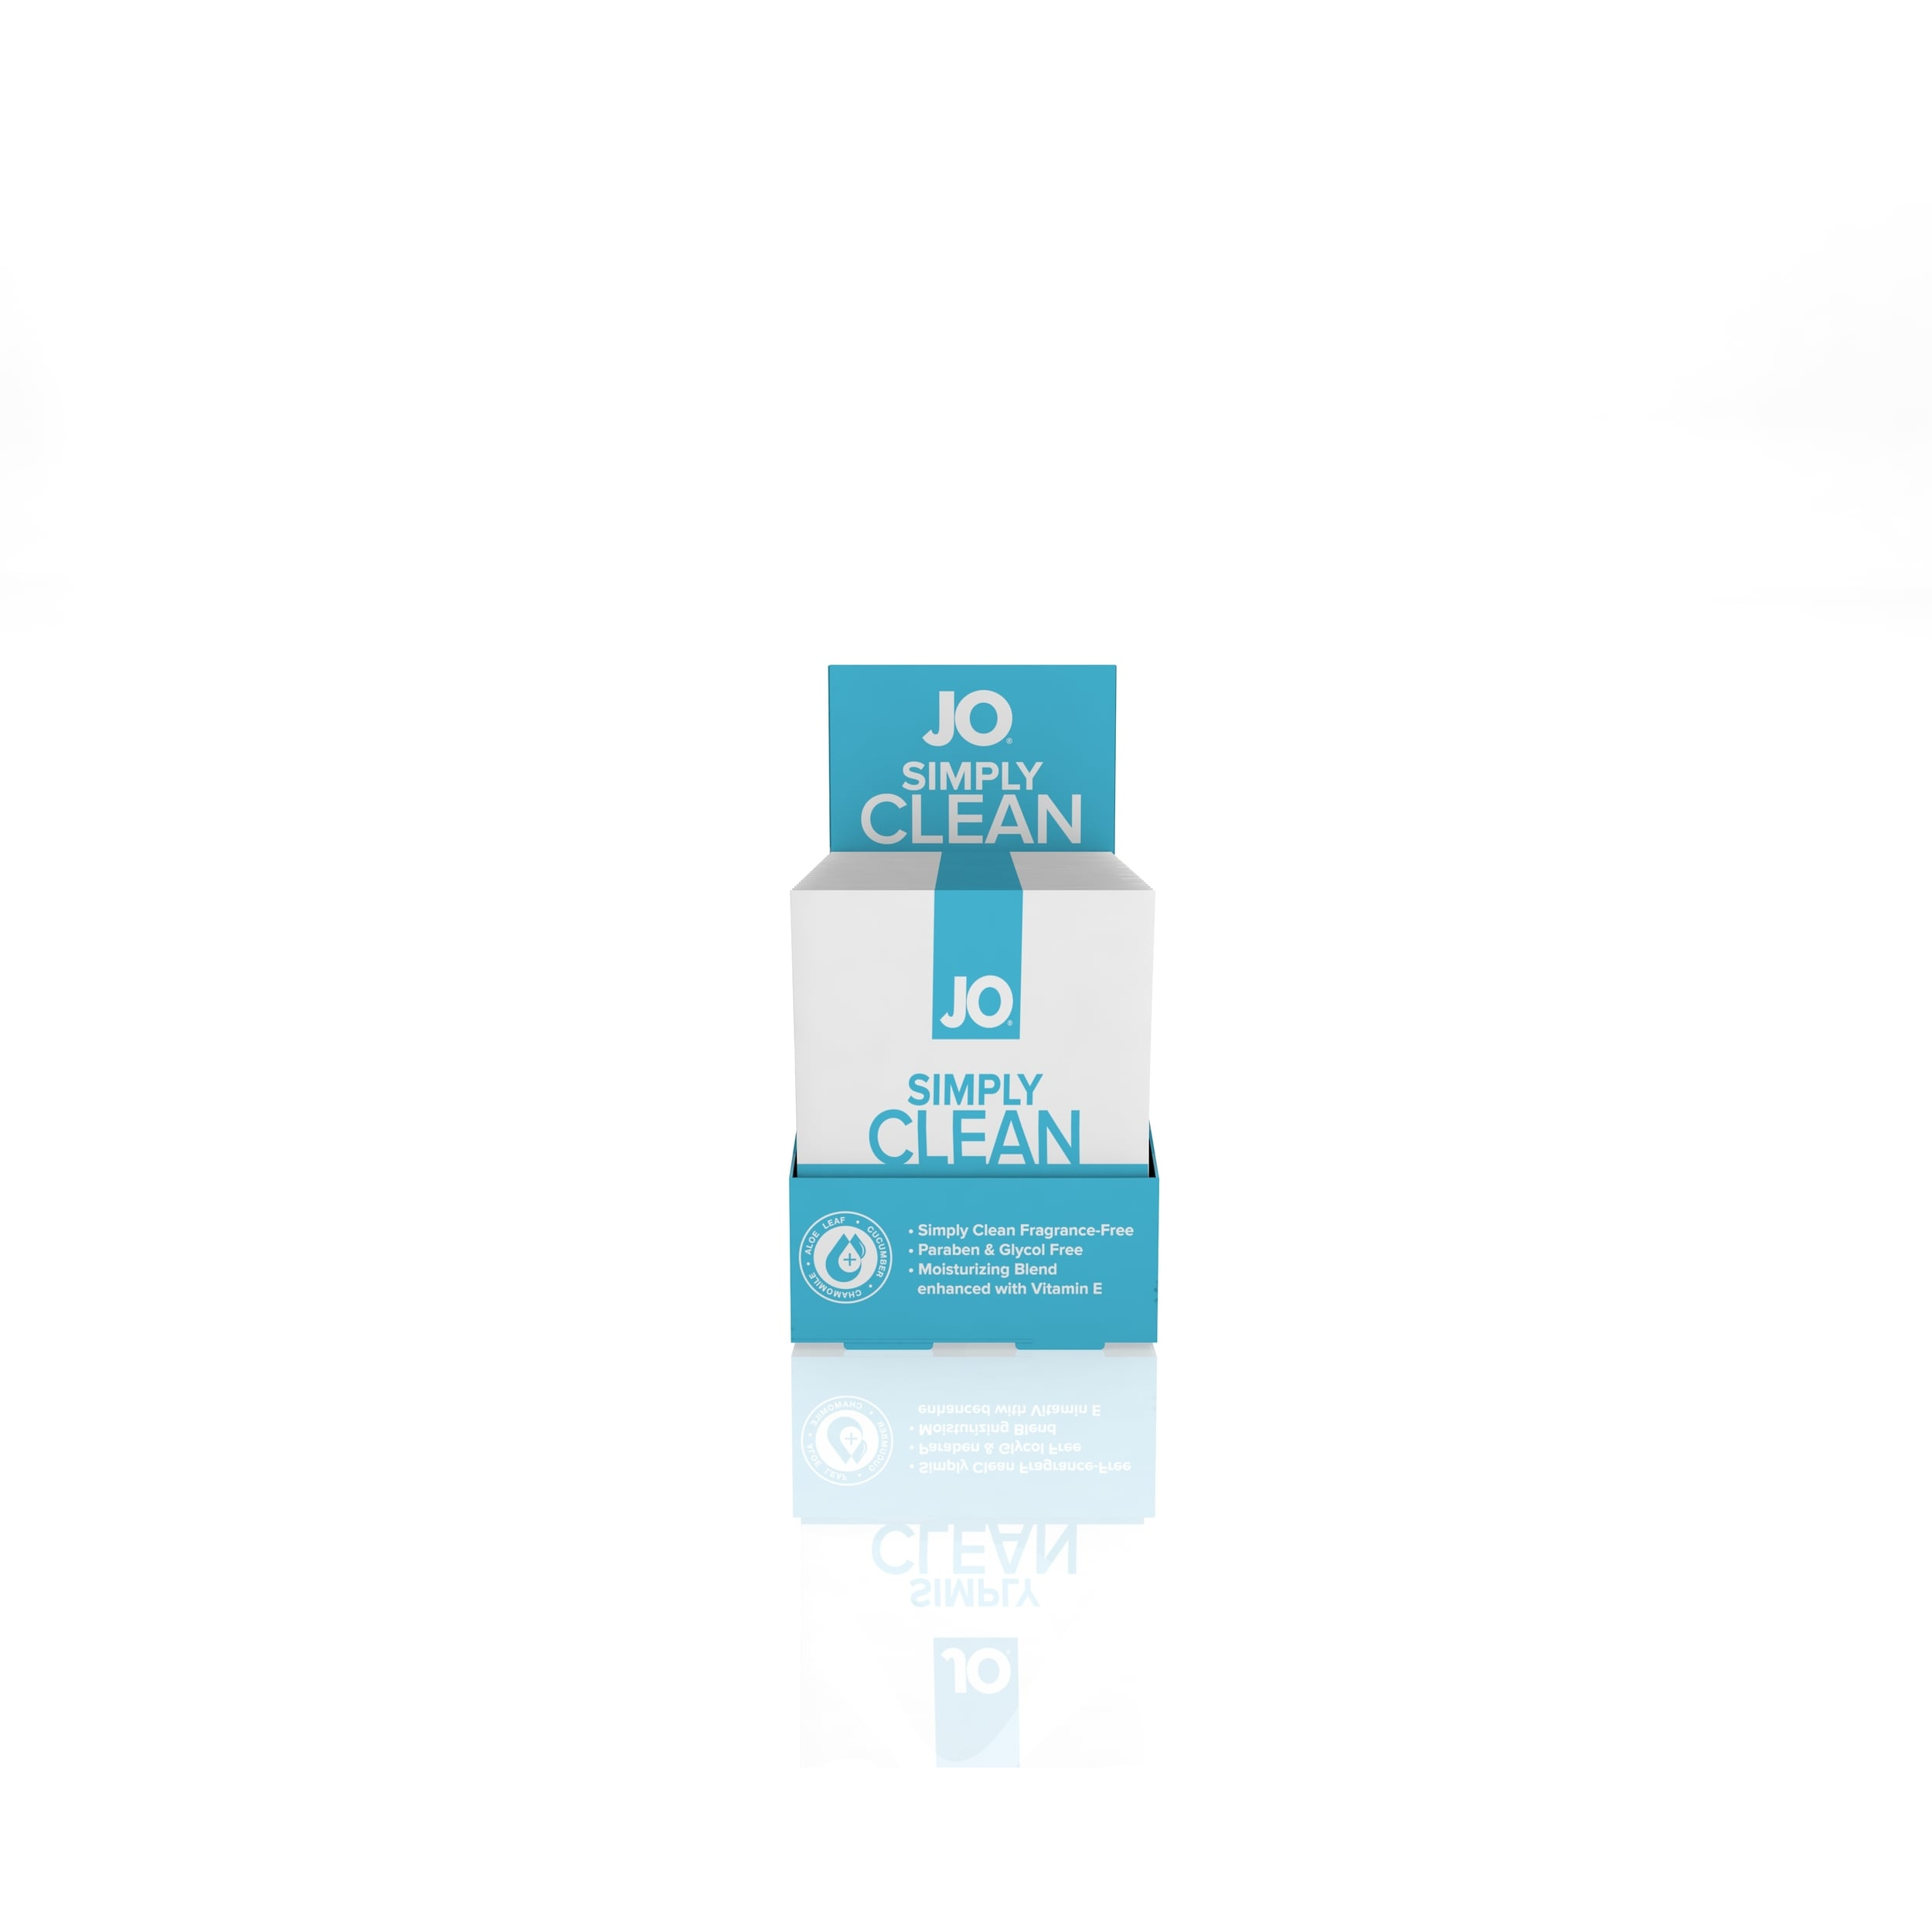 10220 - JO PERSONAL CLEANSING WIPES - SIMPLY CLEAN - single pack  (MOQ 24 units - Includes Counter Display).jpg